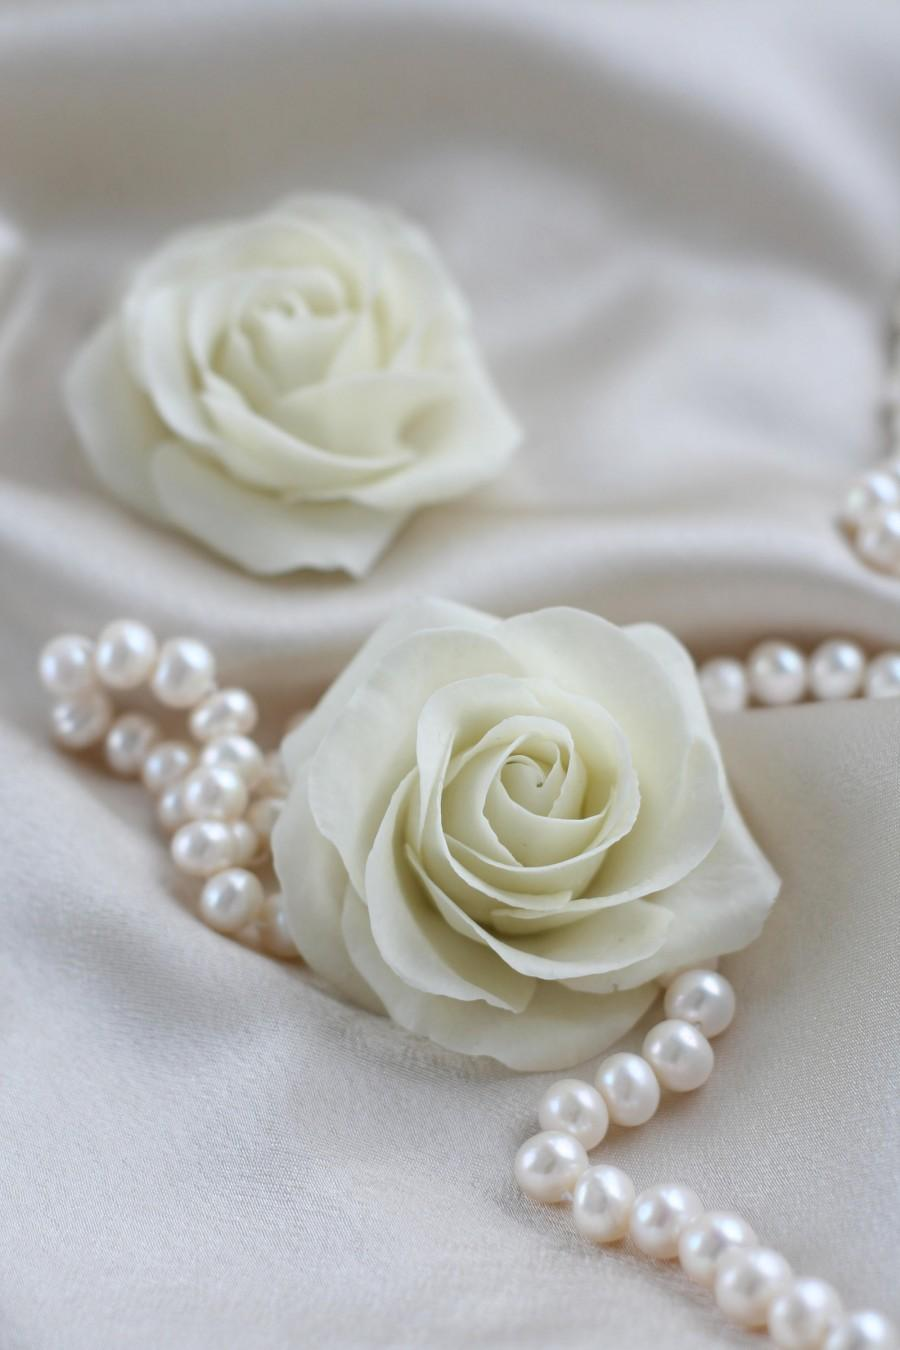 Wedding - Ivory flower Rose hair Wedding Hair flower Bridal Hair accessories Bridal Hair flower Bridal hair clip Wedding hair accessories Flower clip - $25.00 USD